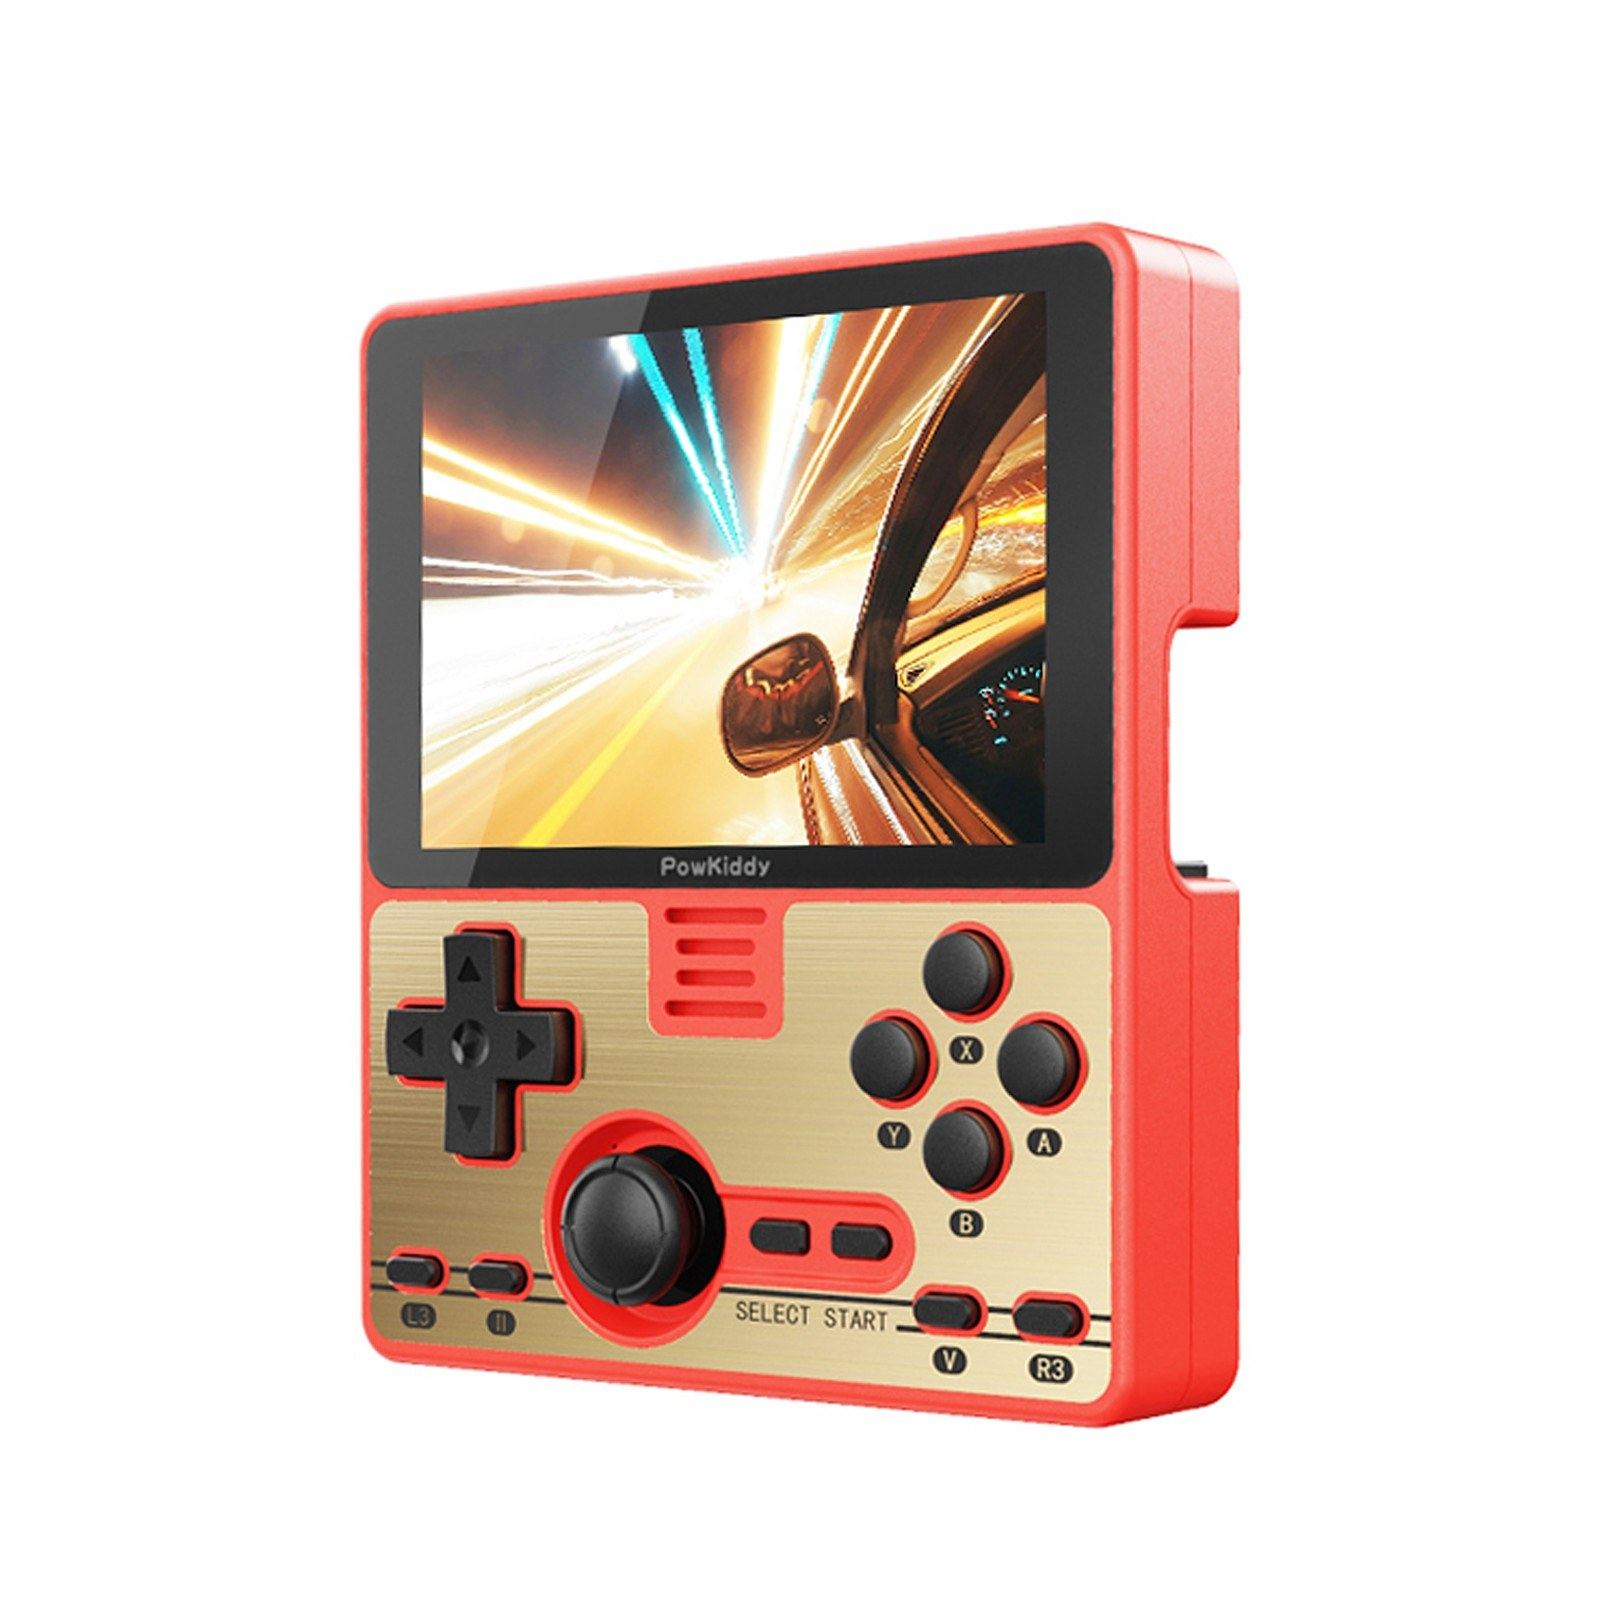 tomtop.com - 43% OFF Powkiddy RGB20 Handheld Game Console Portable Game Player, Limited Offers $82.99